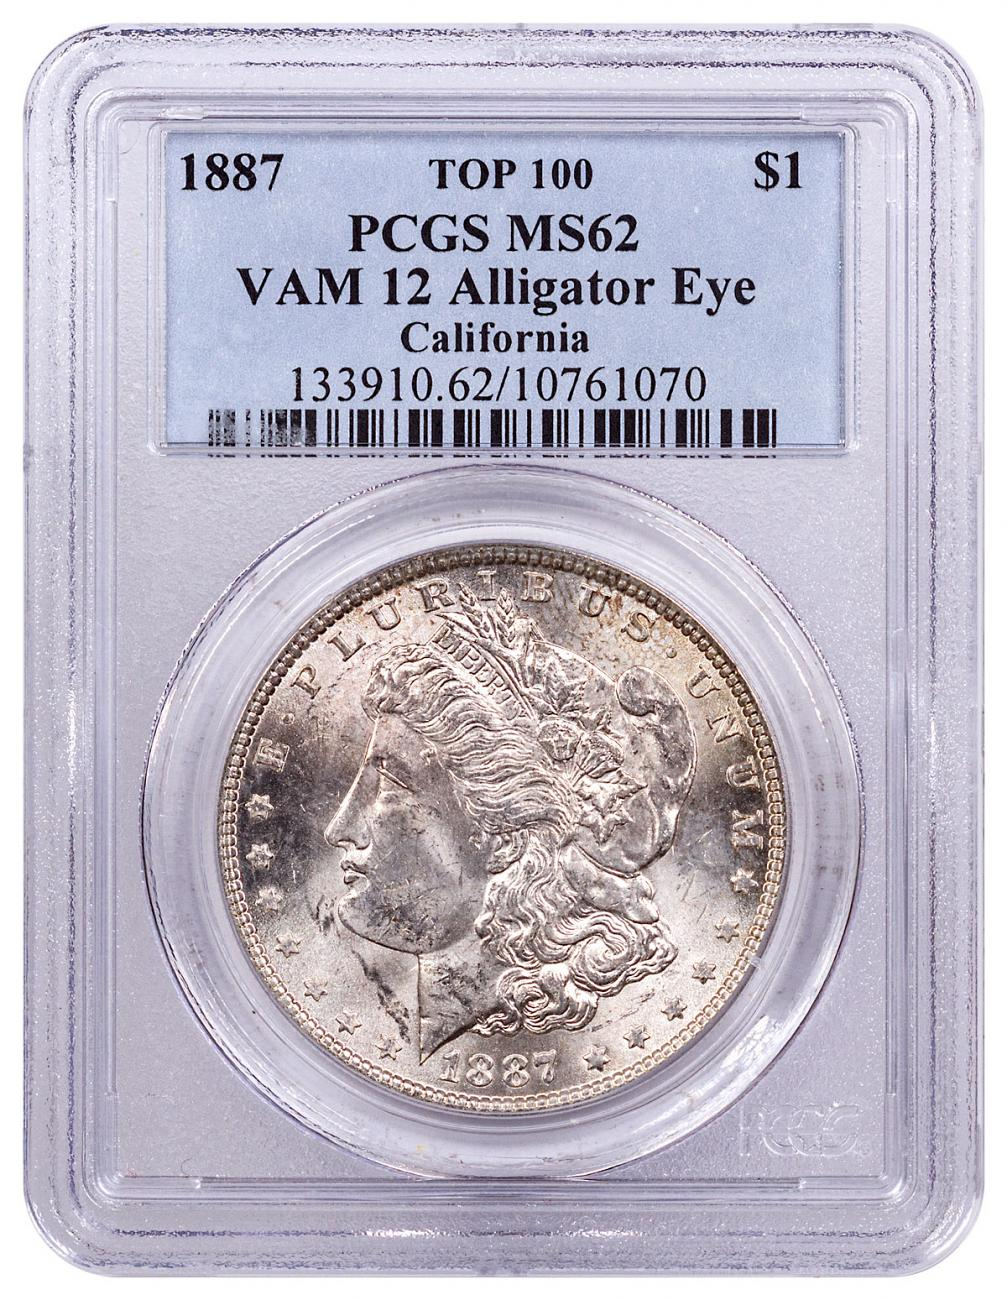 1887 Morgan Silver Dollar Top 100 PCGS MS62 VAM-12 Alligator Eye California